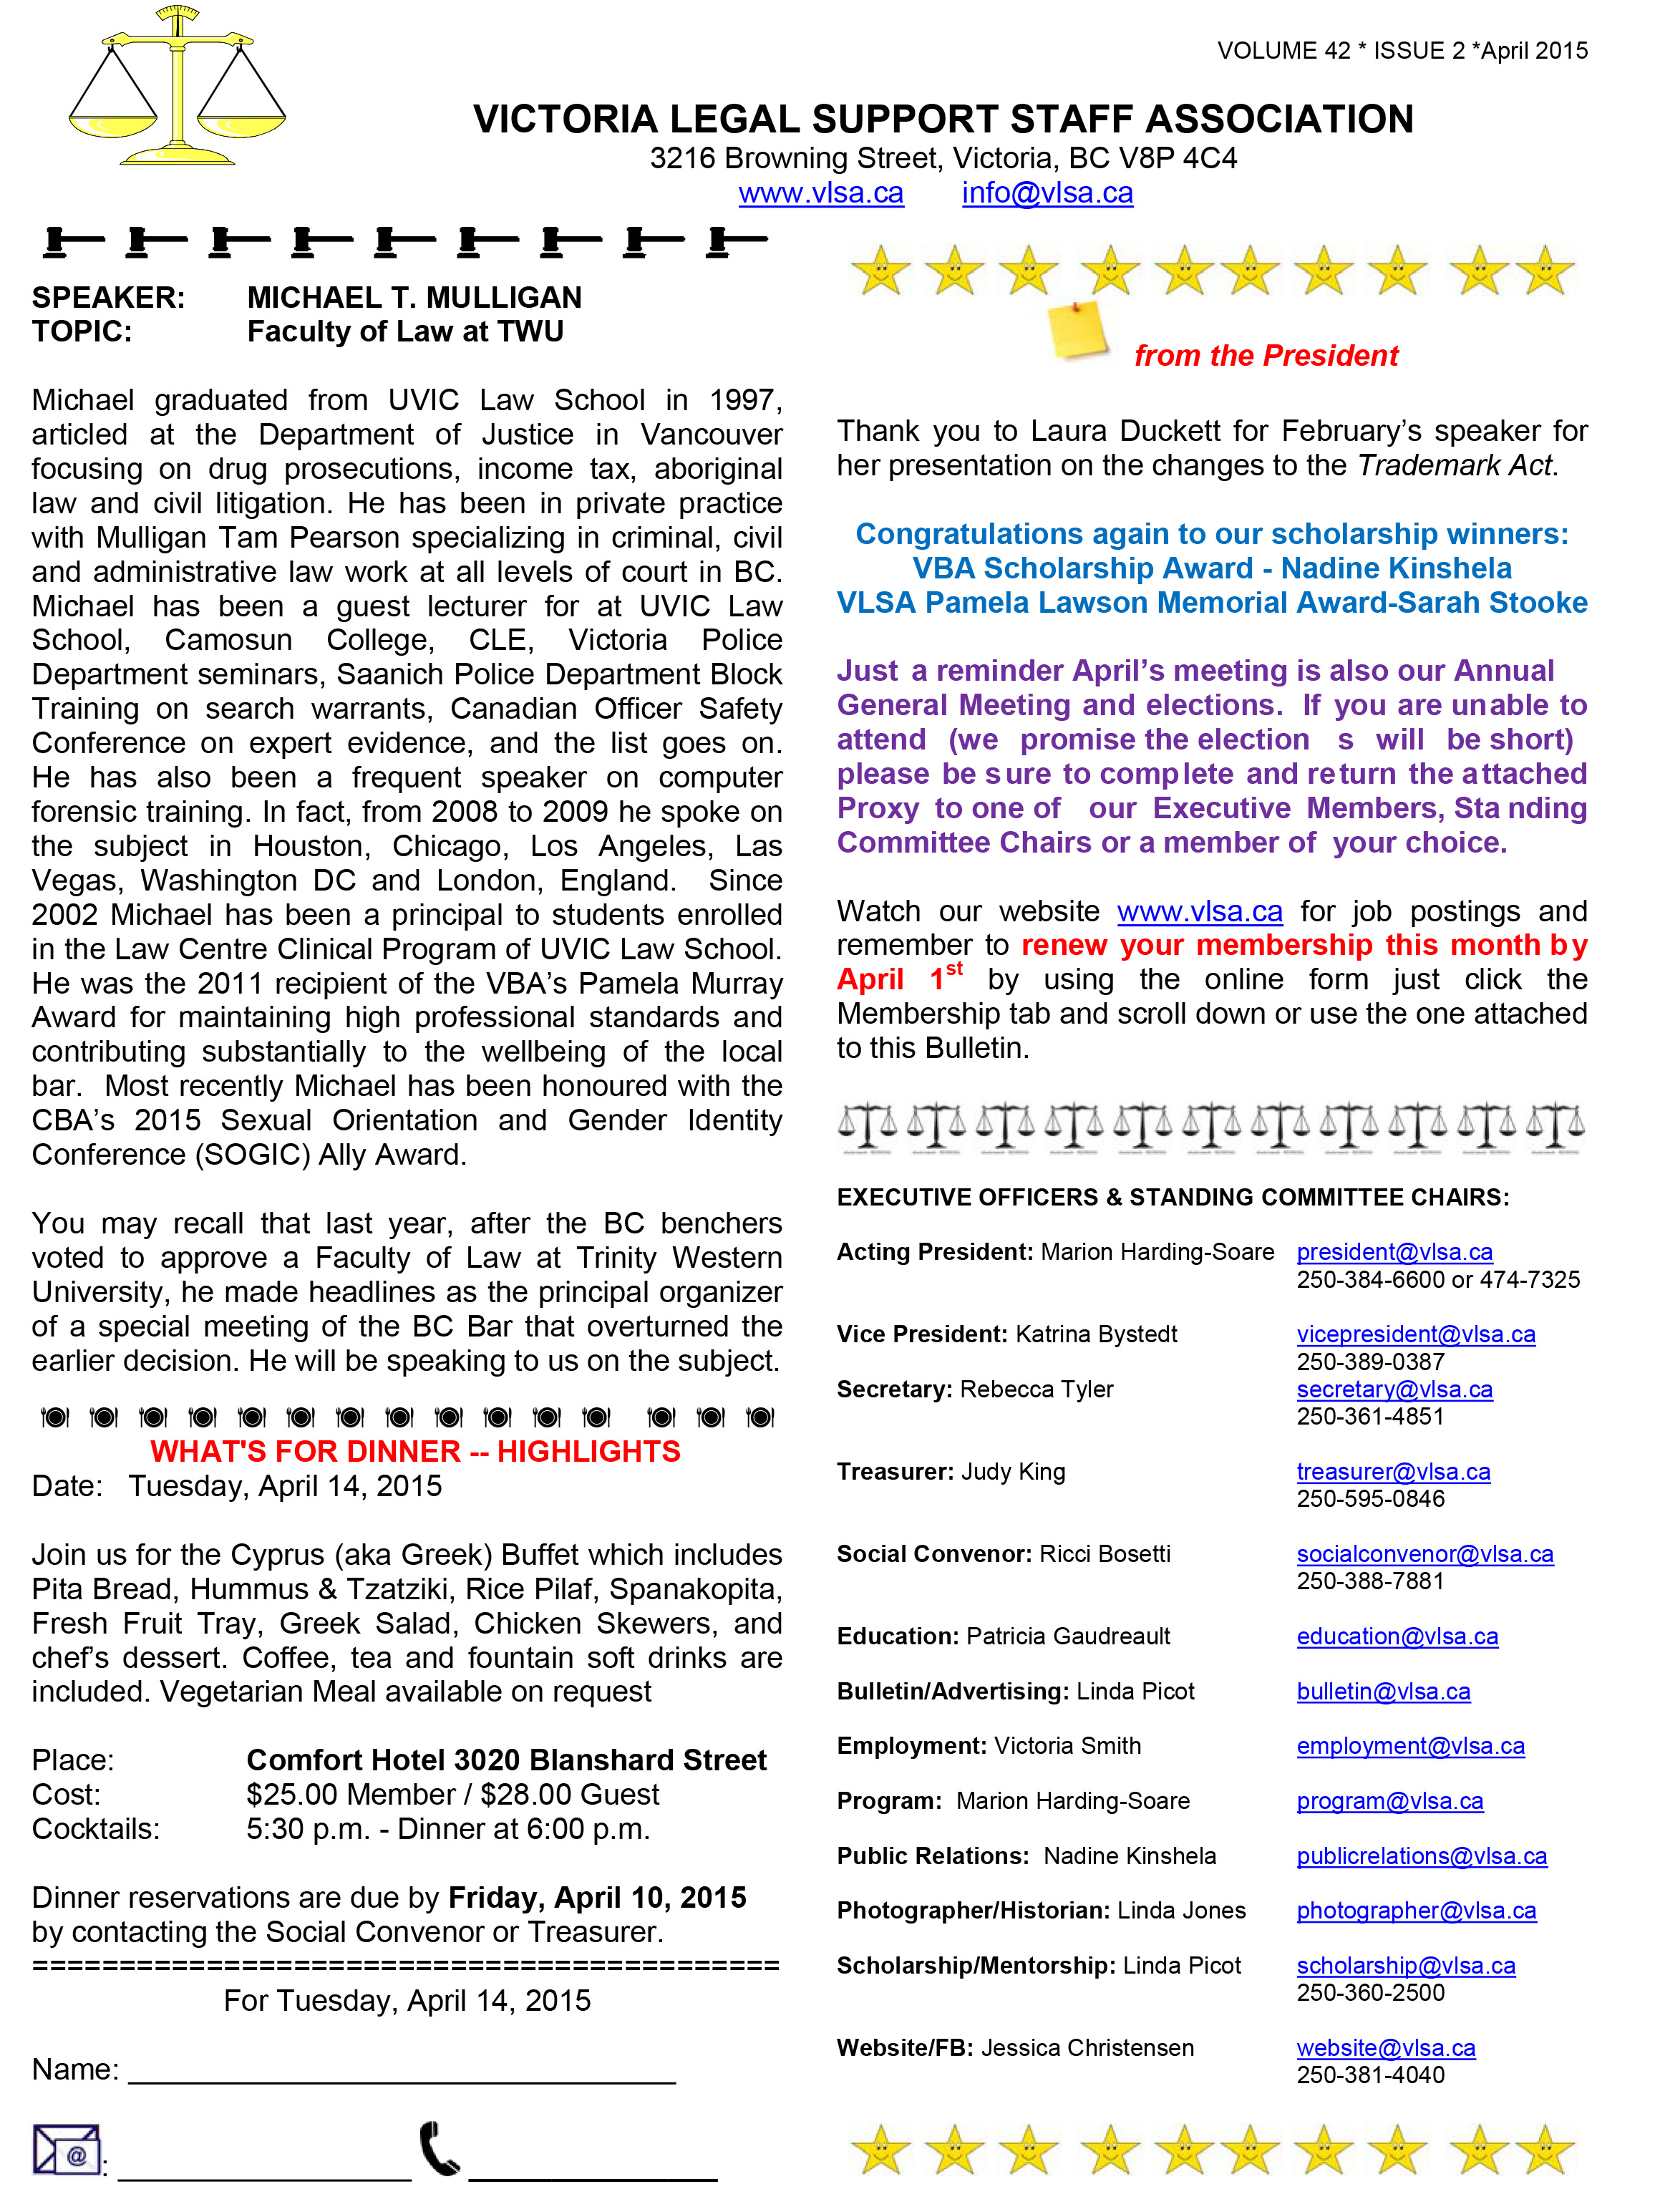 Microsoft Word - VLSA Bulletin April 2015